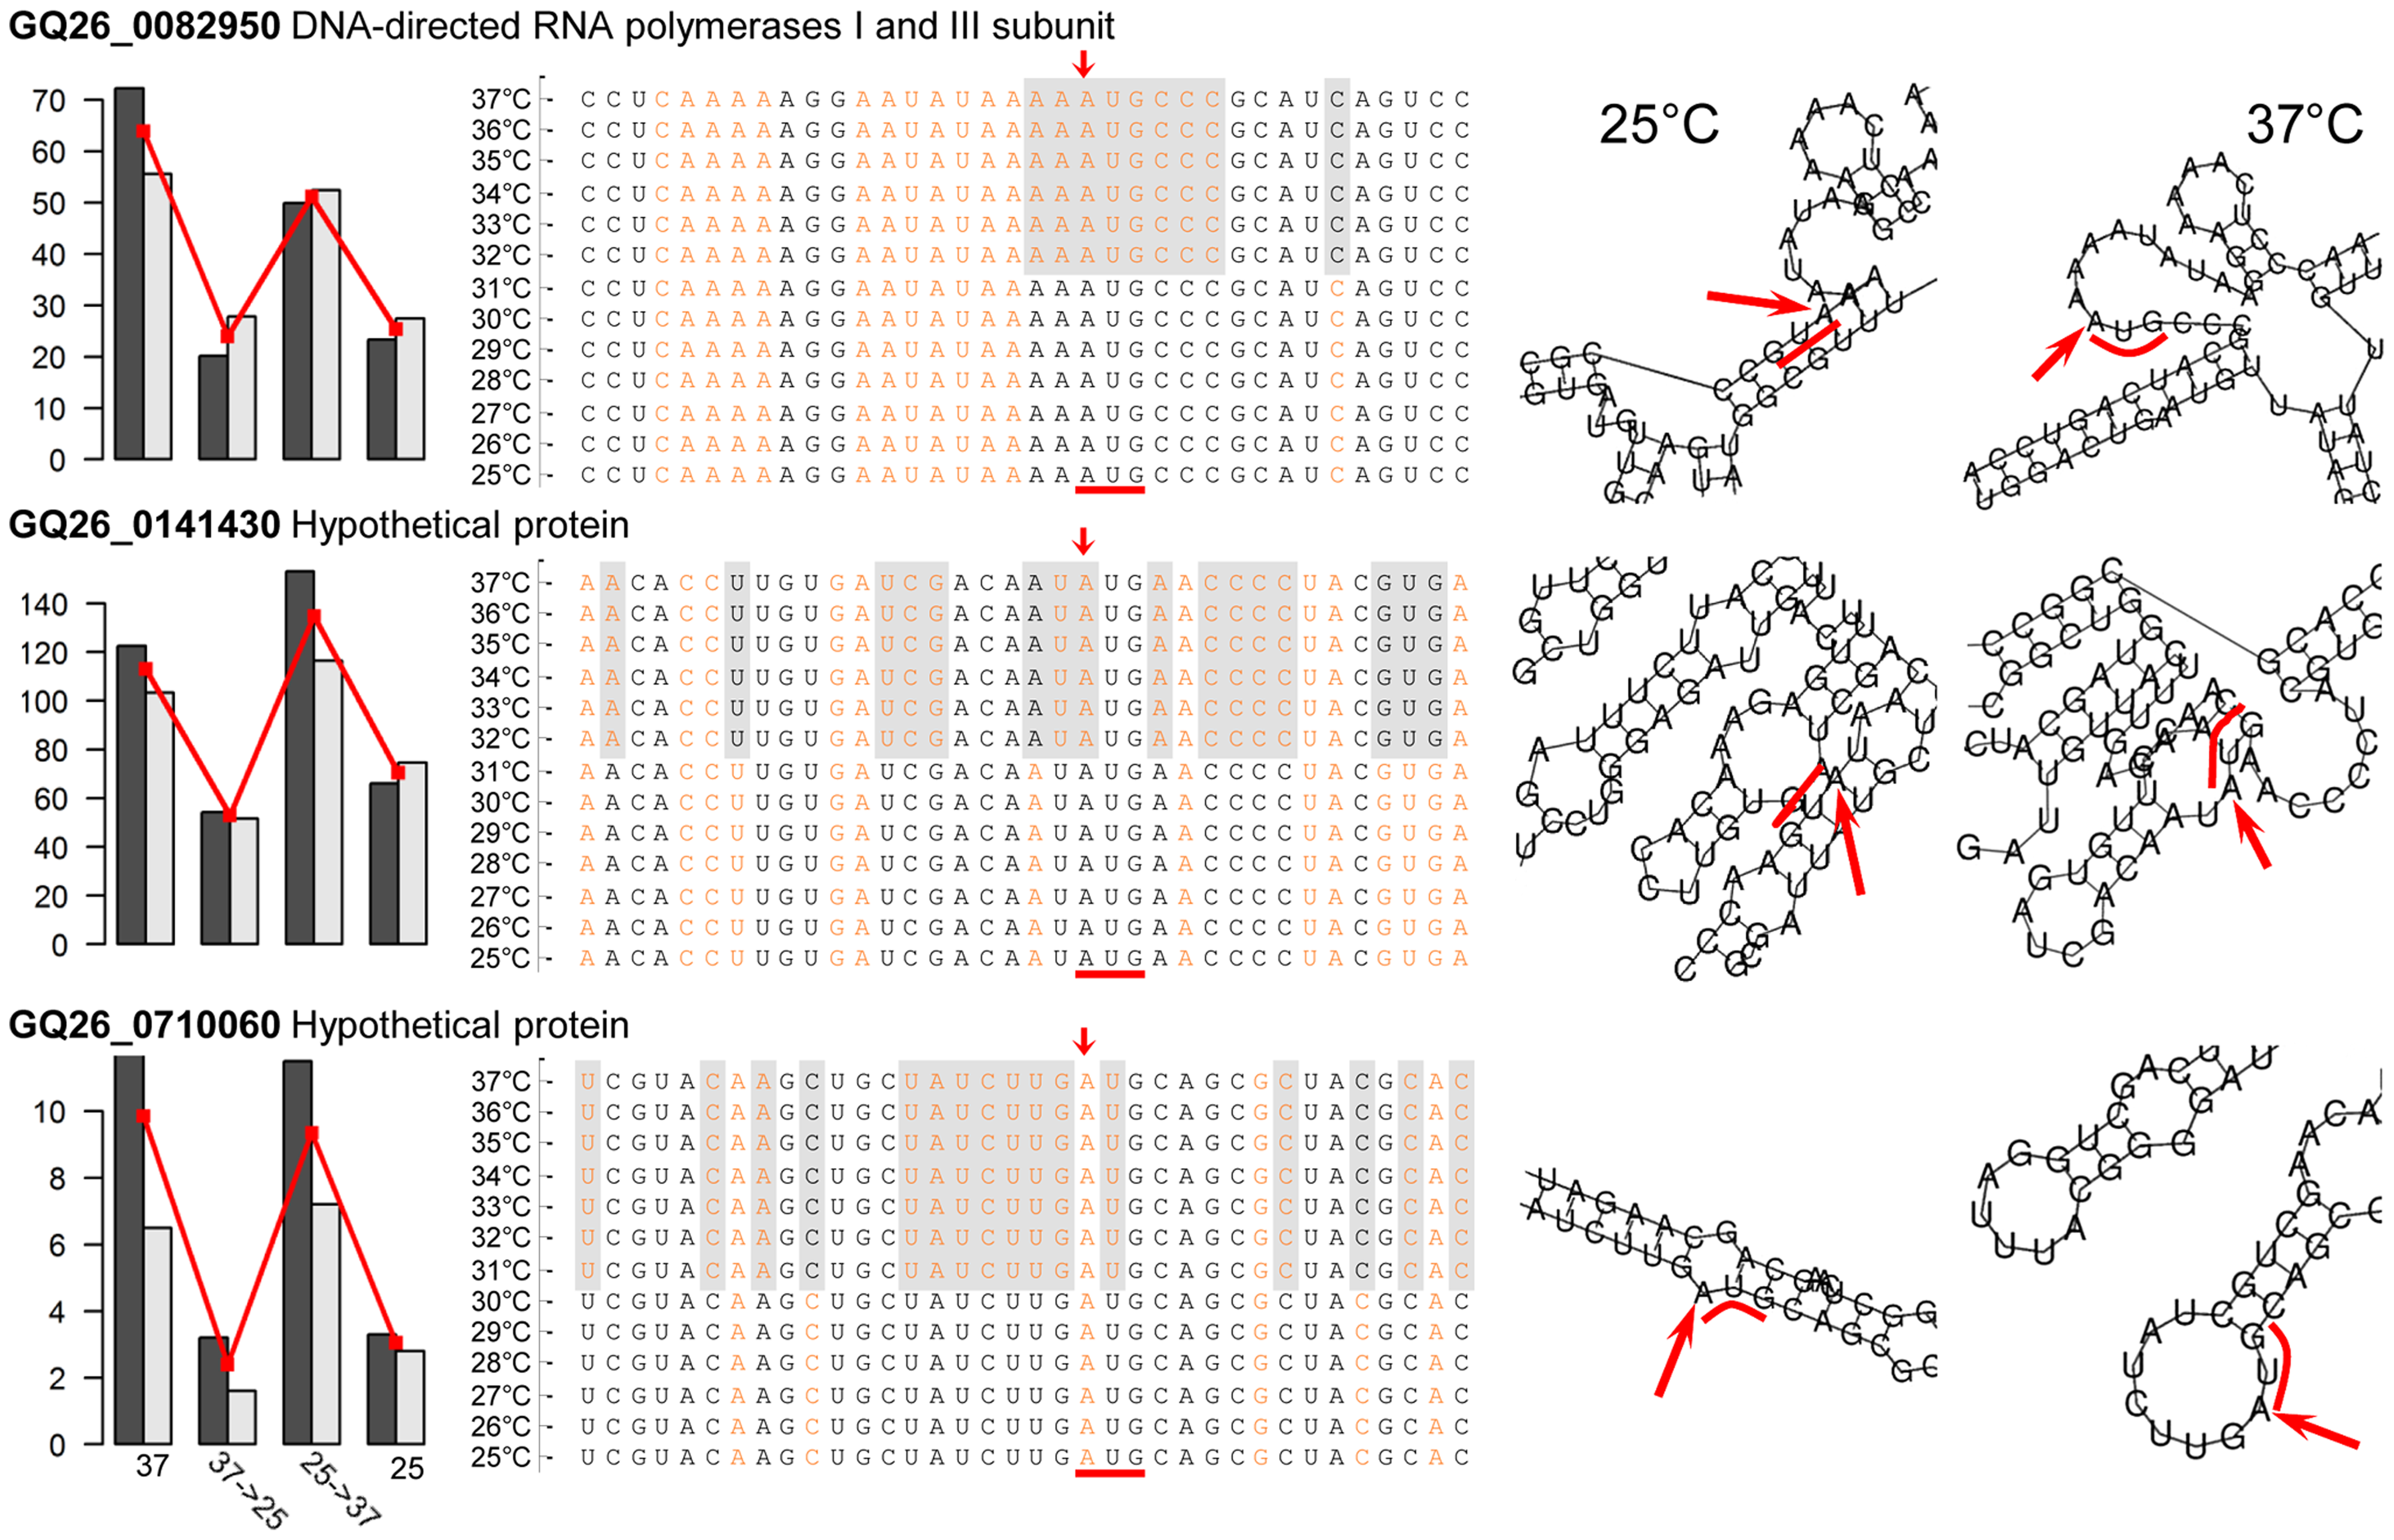 Temperature-induced structural transitions of <i>P. marneffei</i> mRNA transcripts.